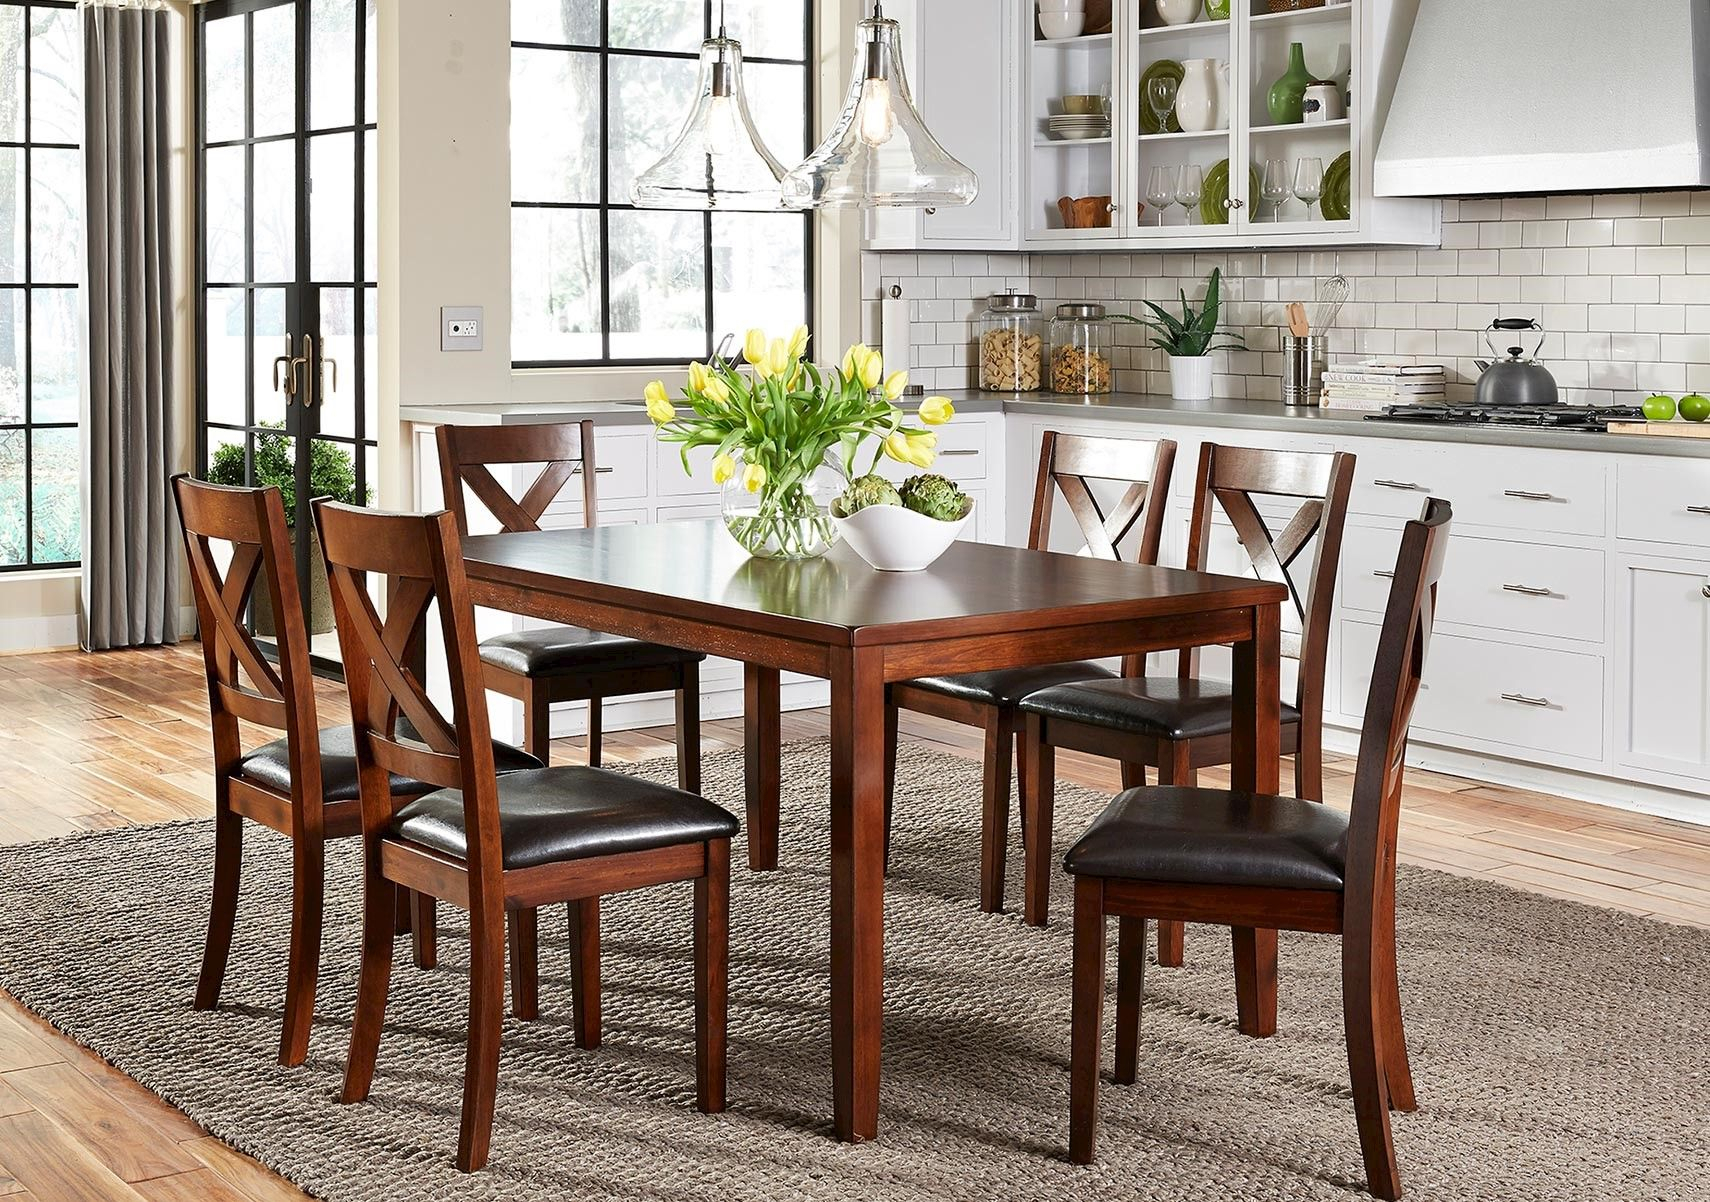 Lacks | Thornton 7 Pc Dining Set | Dining Rooms | Pub Table Sets Intended For Most Up To Date Penelope 3 Piece Counter Height Wood Dining Sets (Photo 19 of 20)